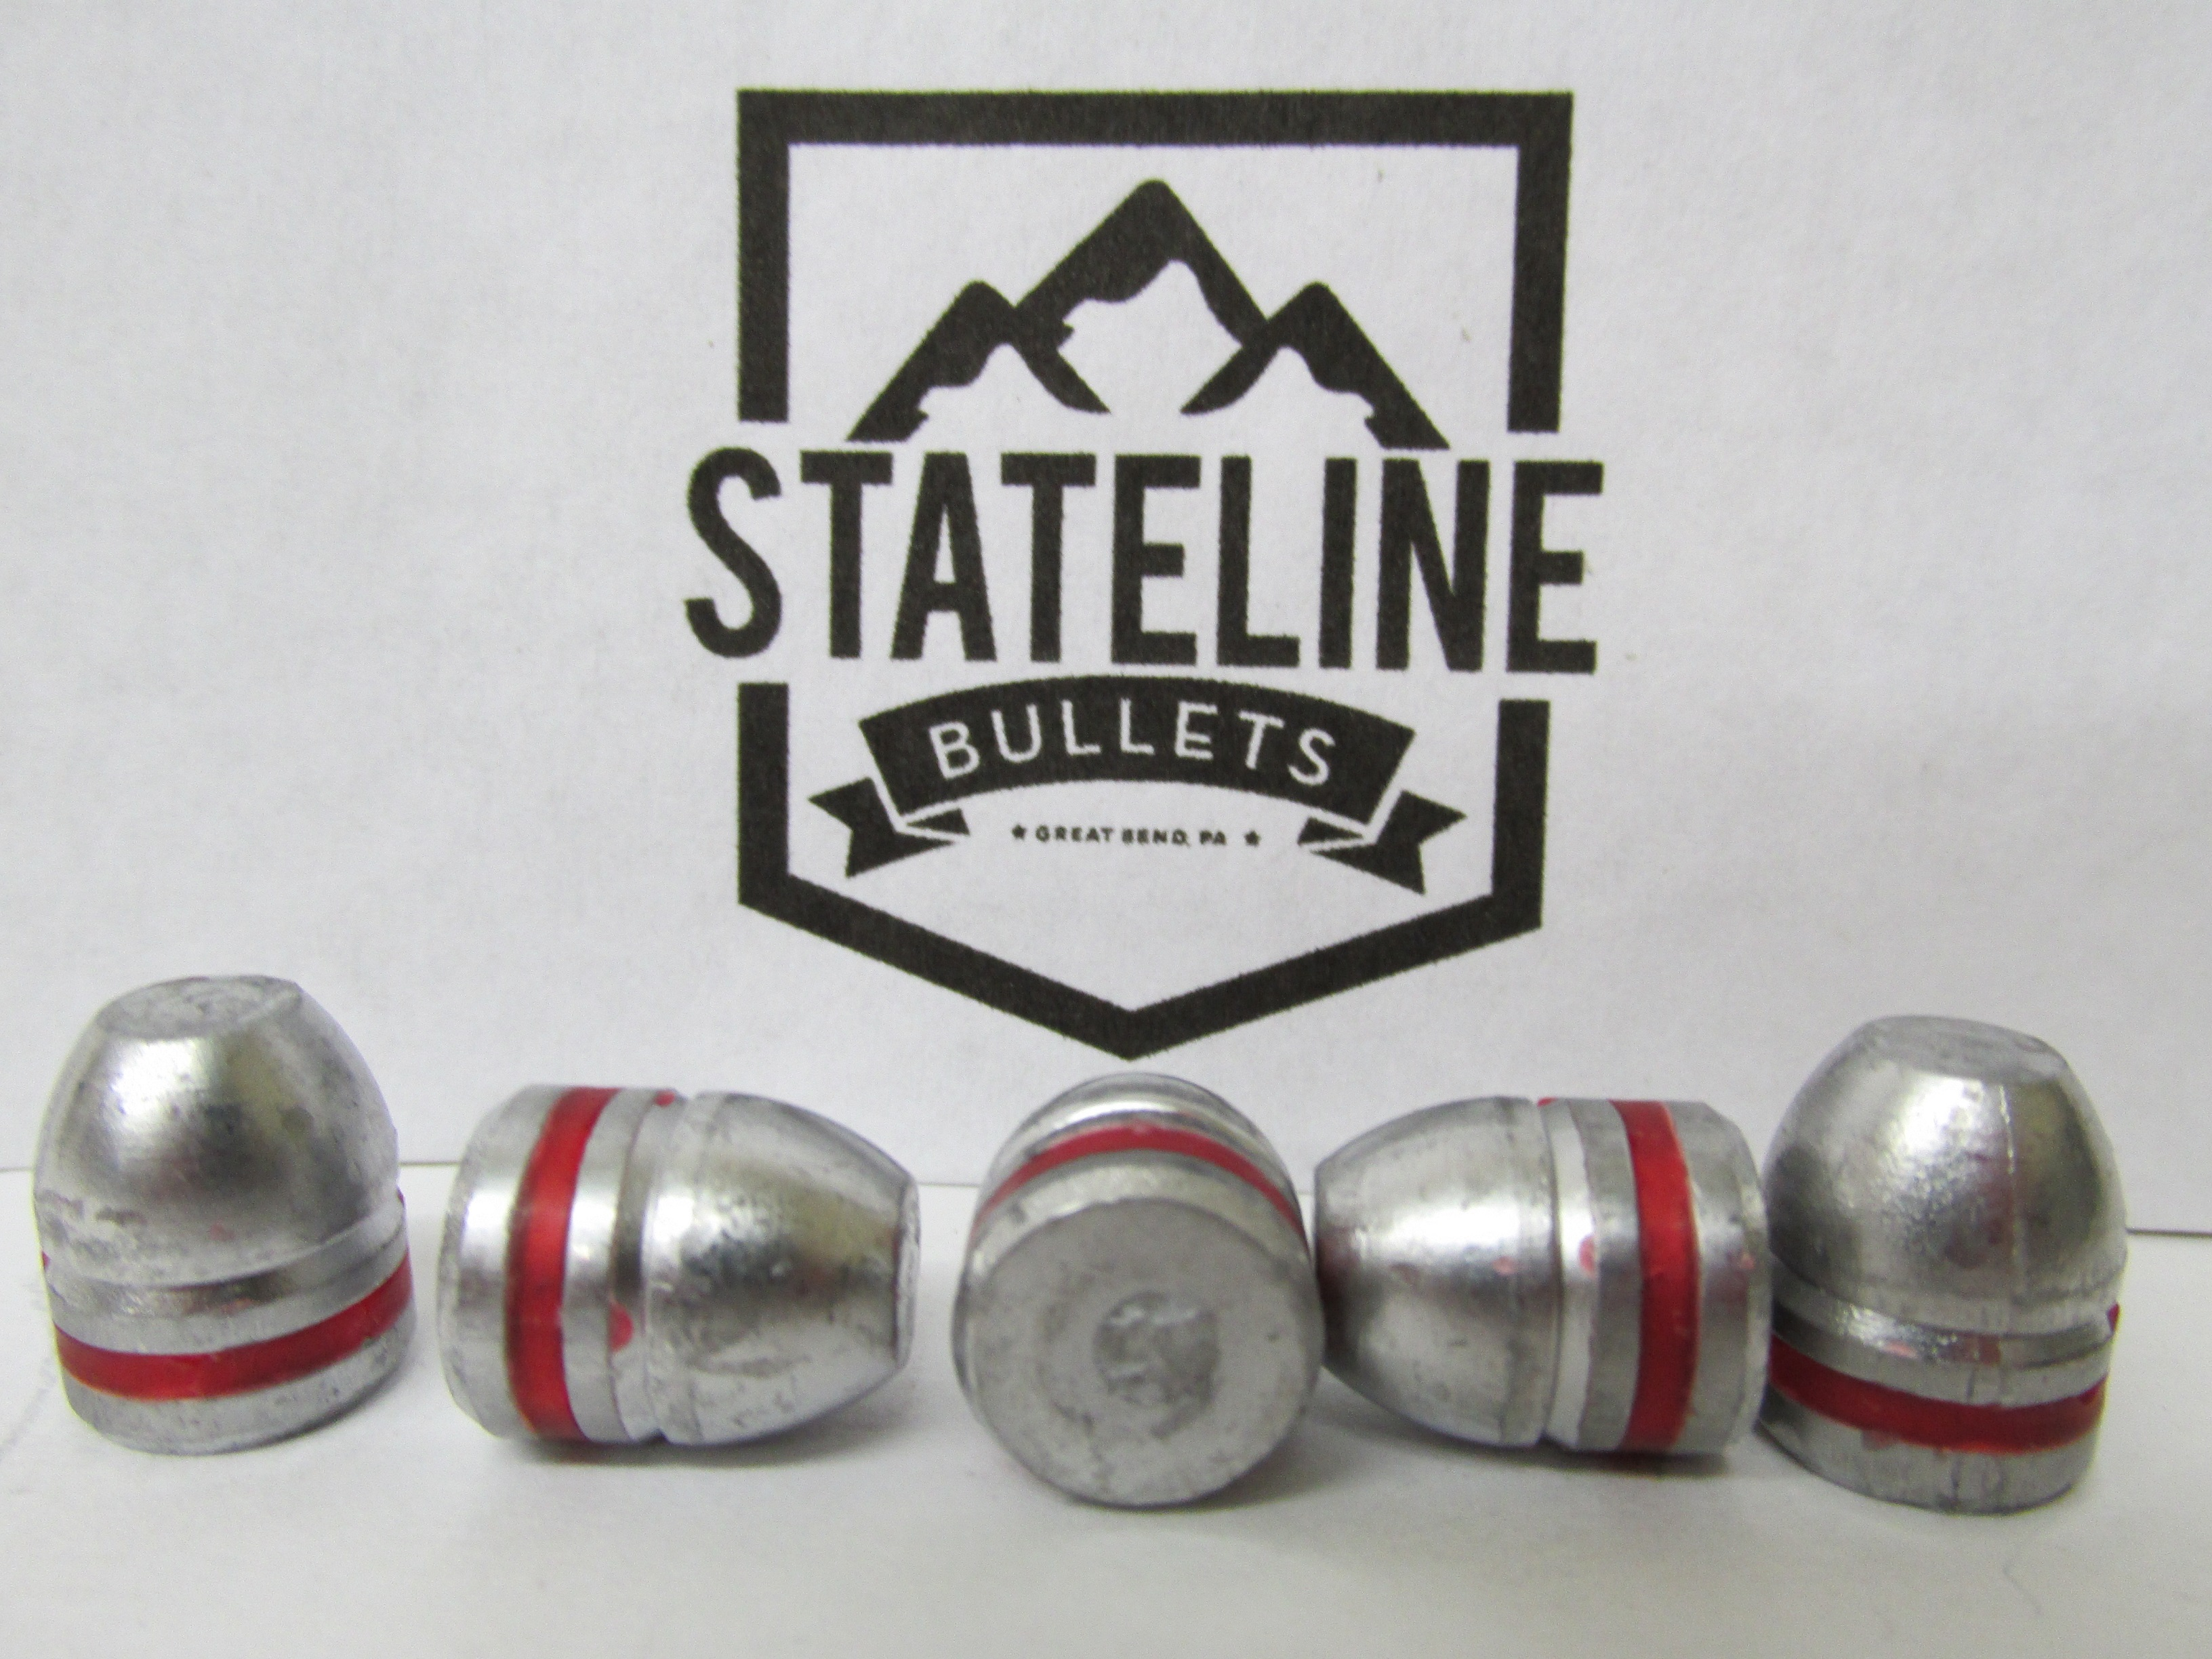 45 Cal 200gr RNFP Cowboy Action - Stateline Bullets